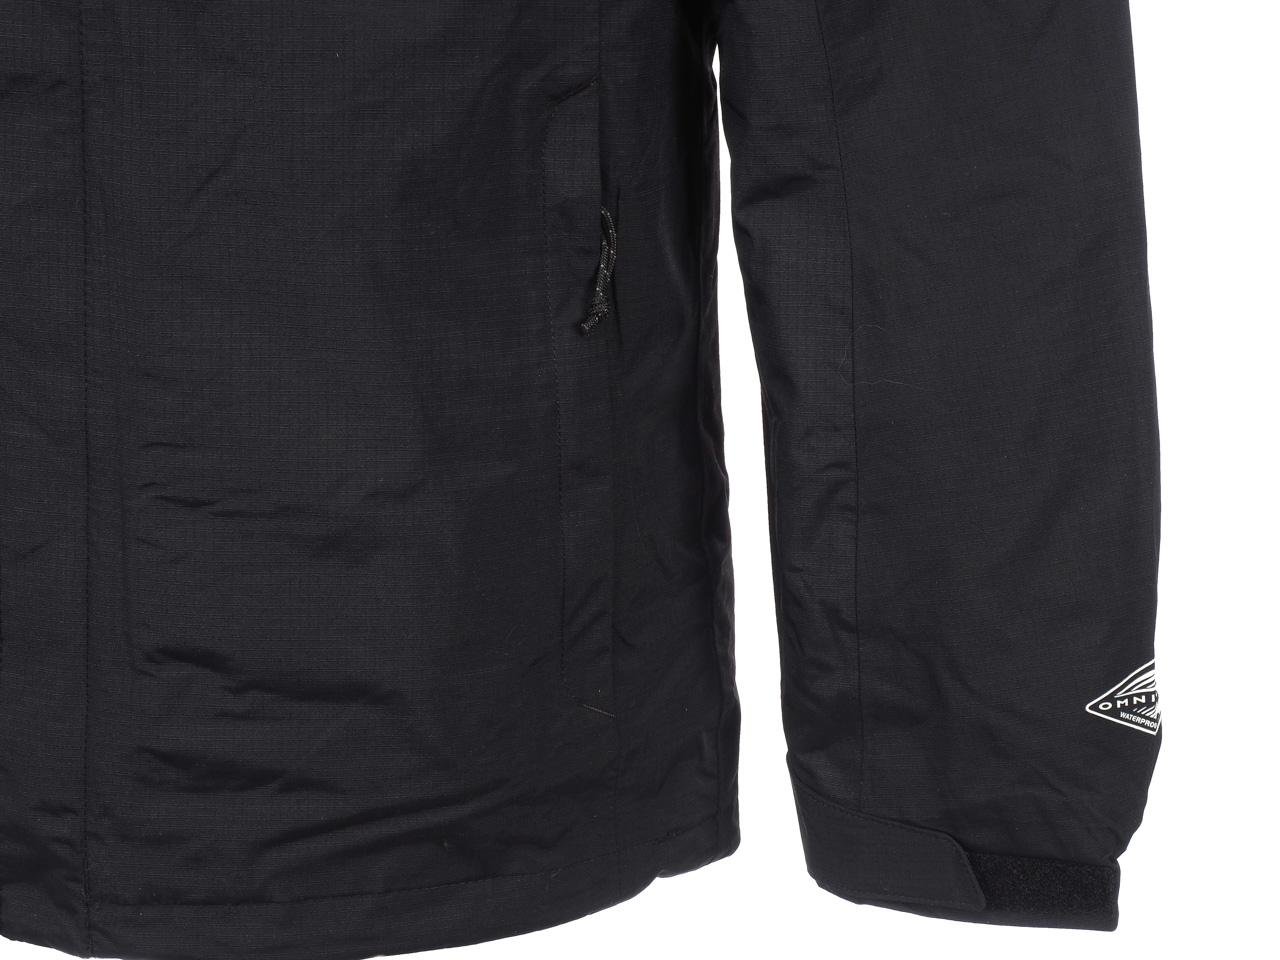 Jackets-3-in-1-Columbia-Mission-Air-Black-Black-41300-New thumbnail 4